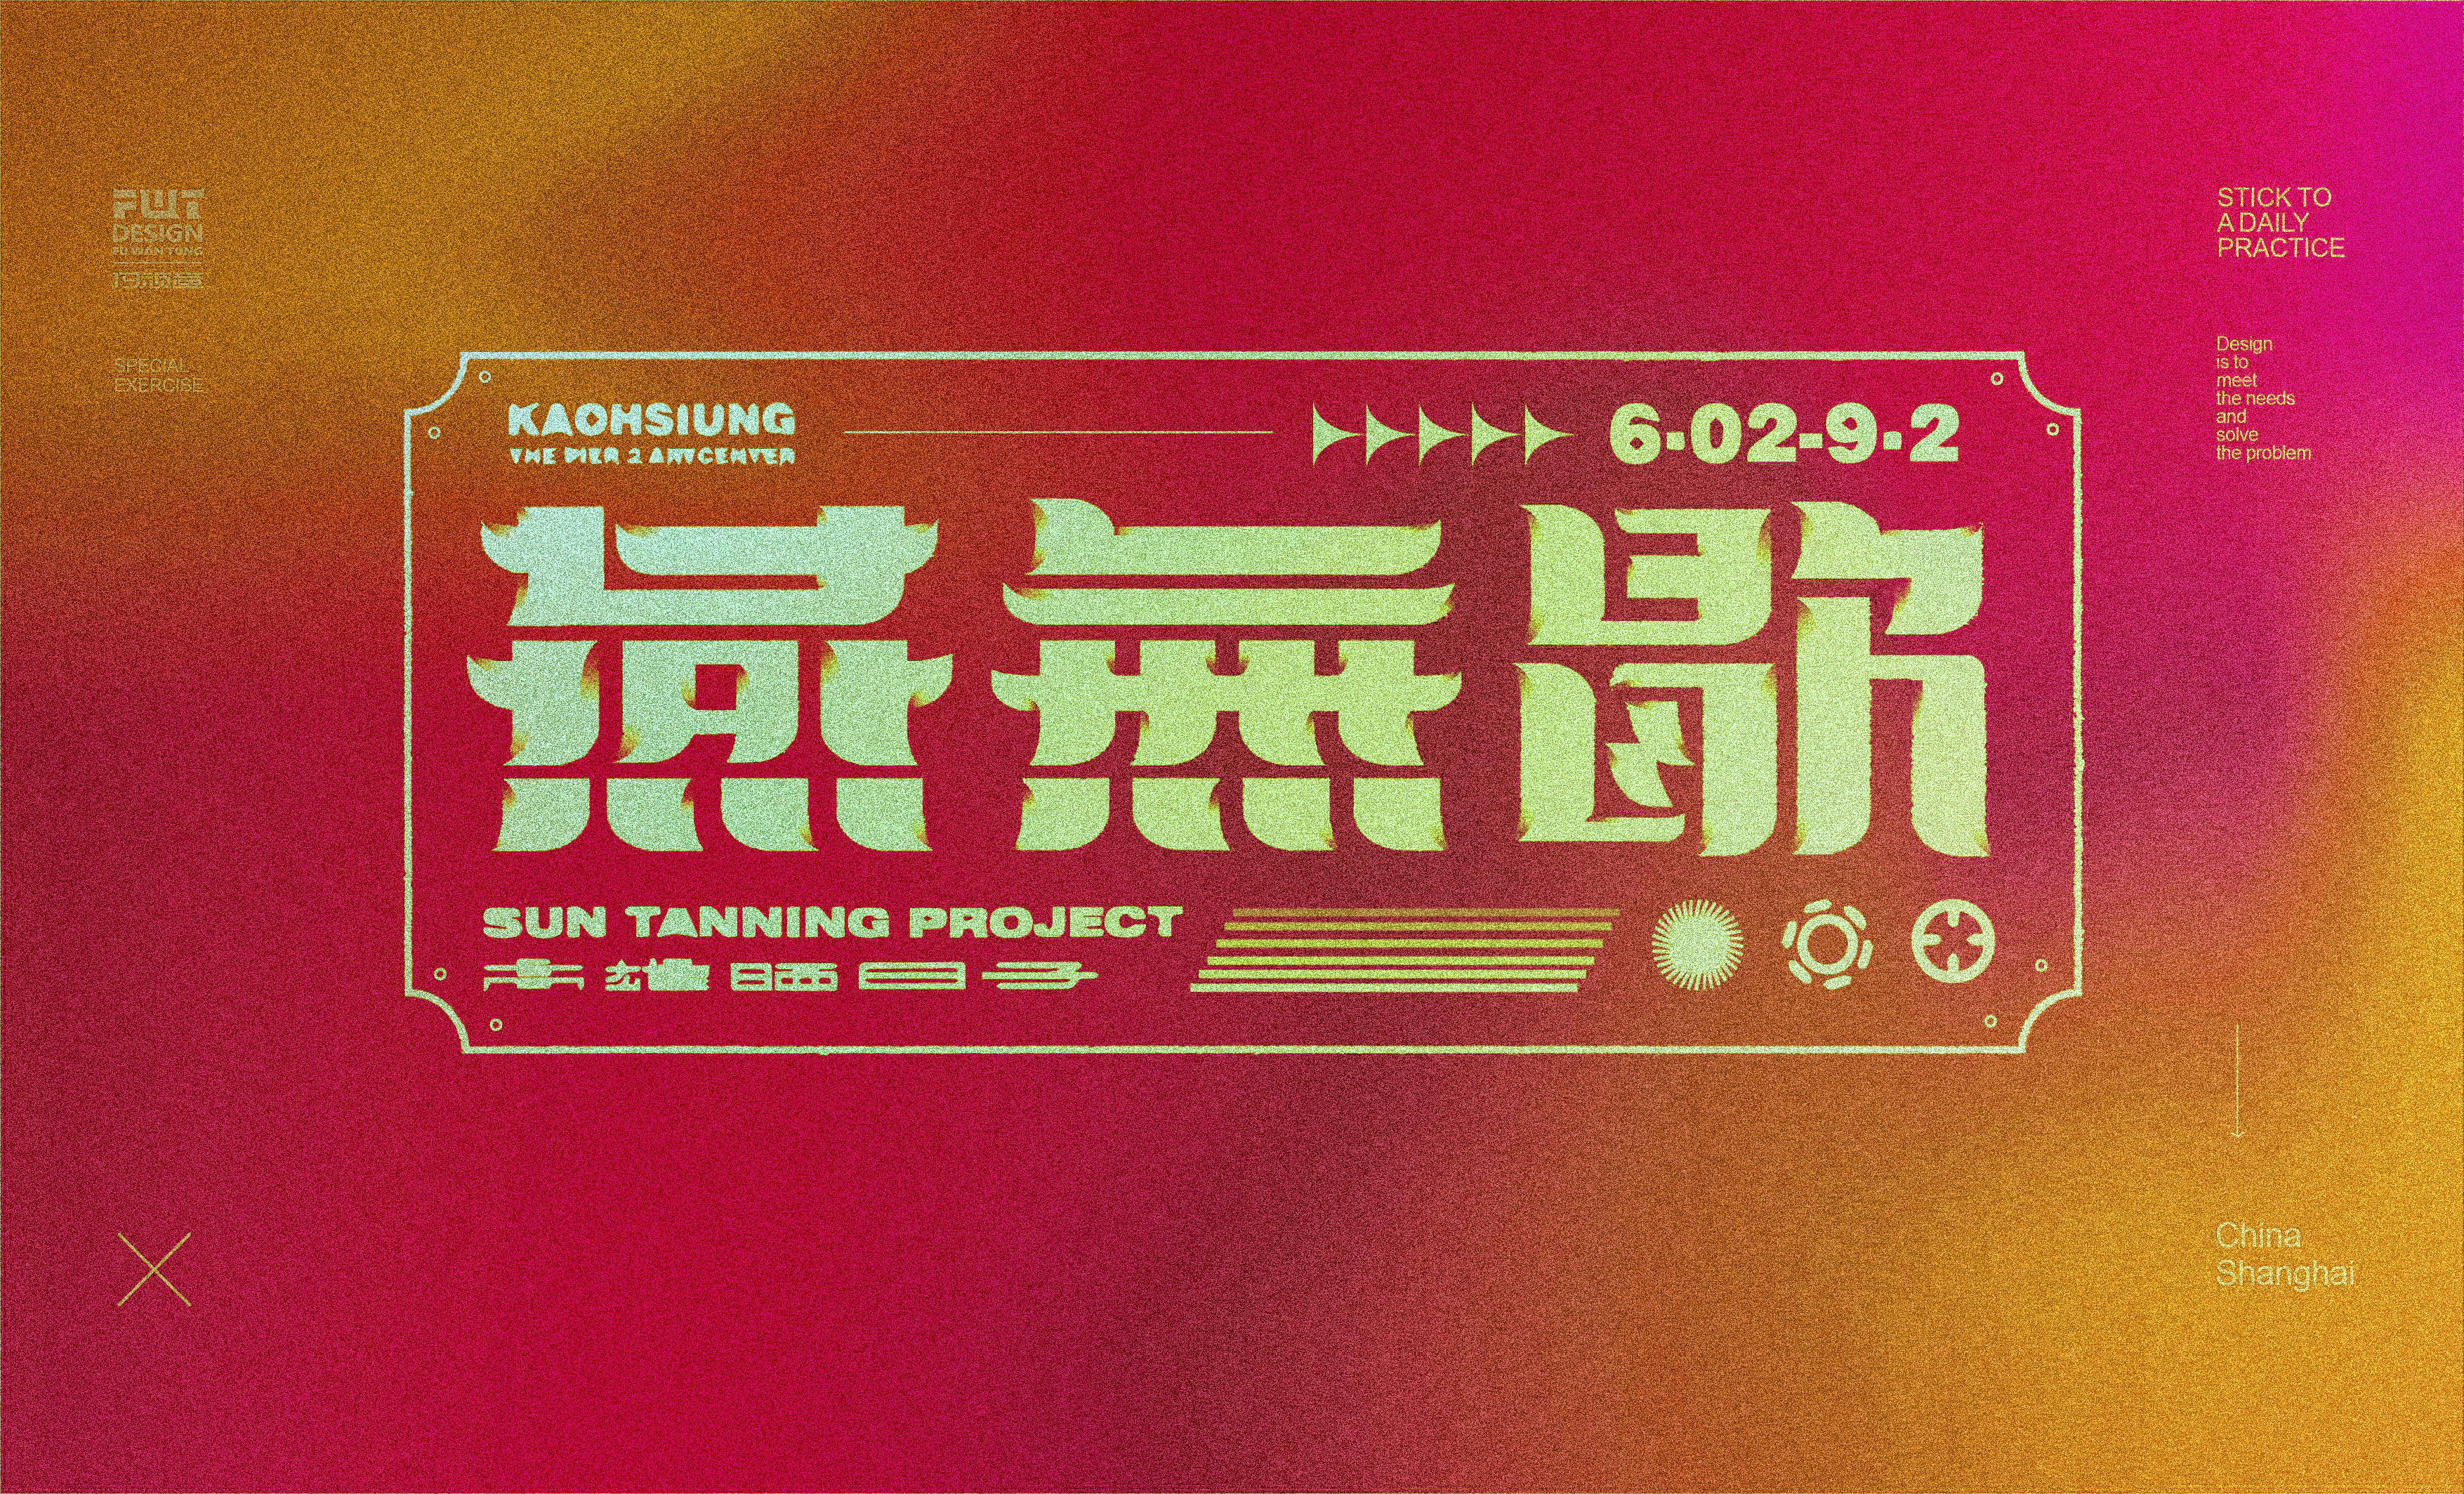 24P Collection of the latest Chinese font design schemes in 2021 #.463